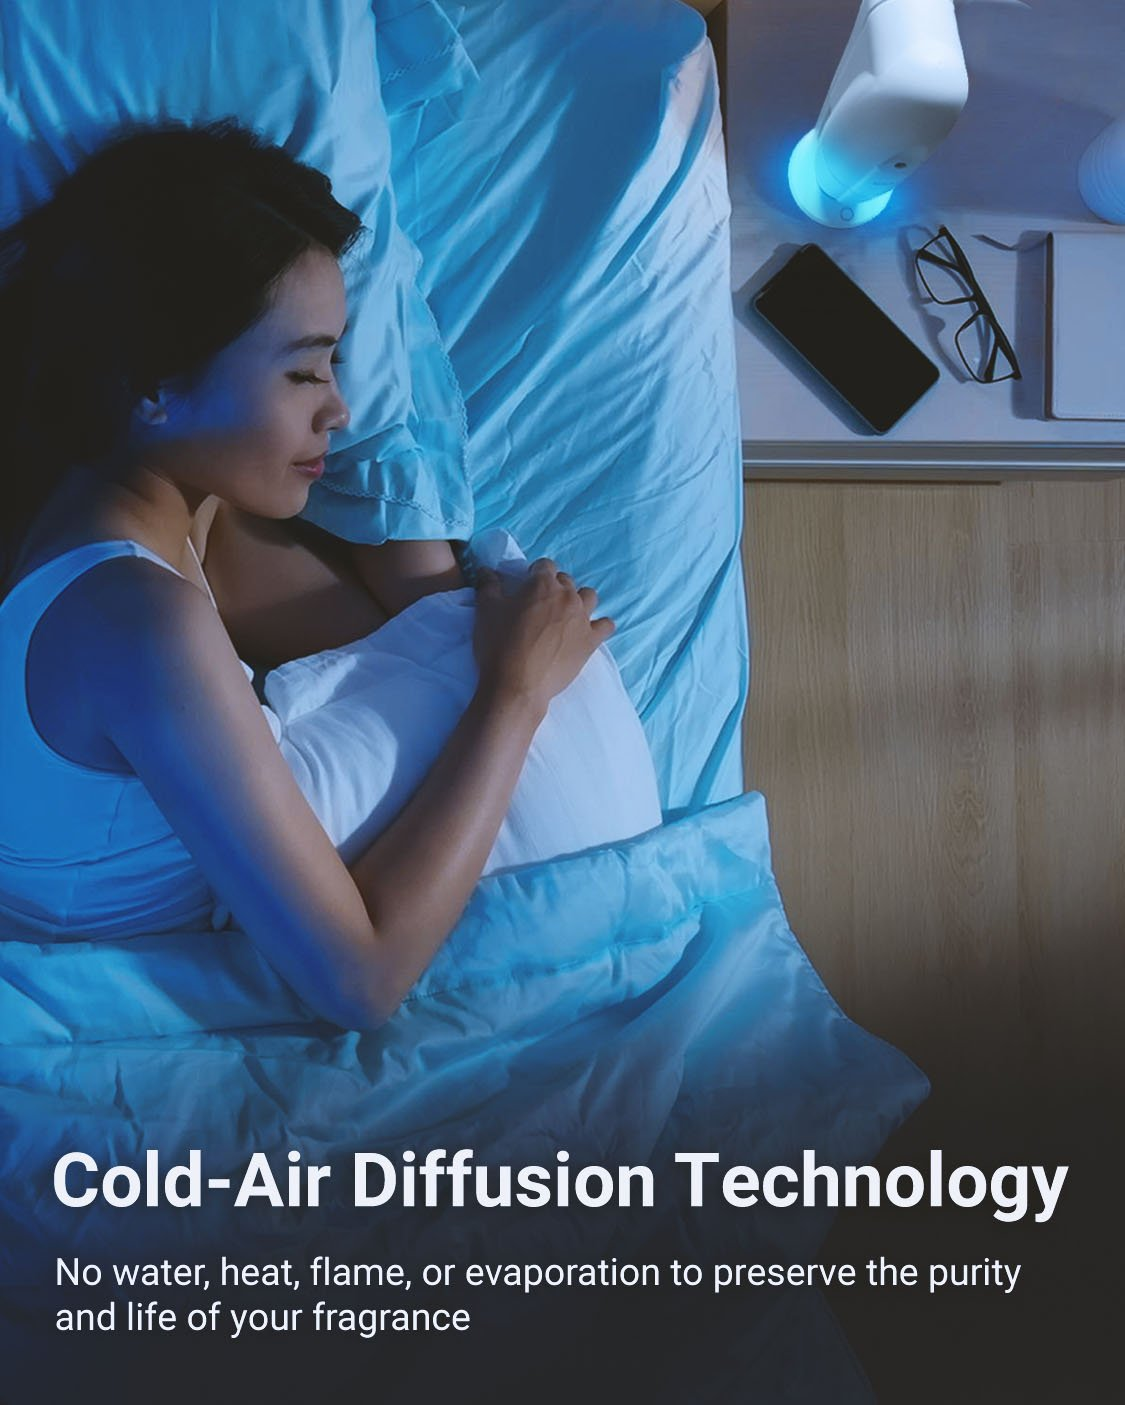 Cold-Air Diffusion Technology Image